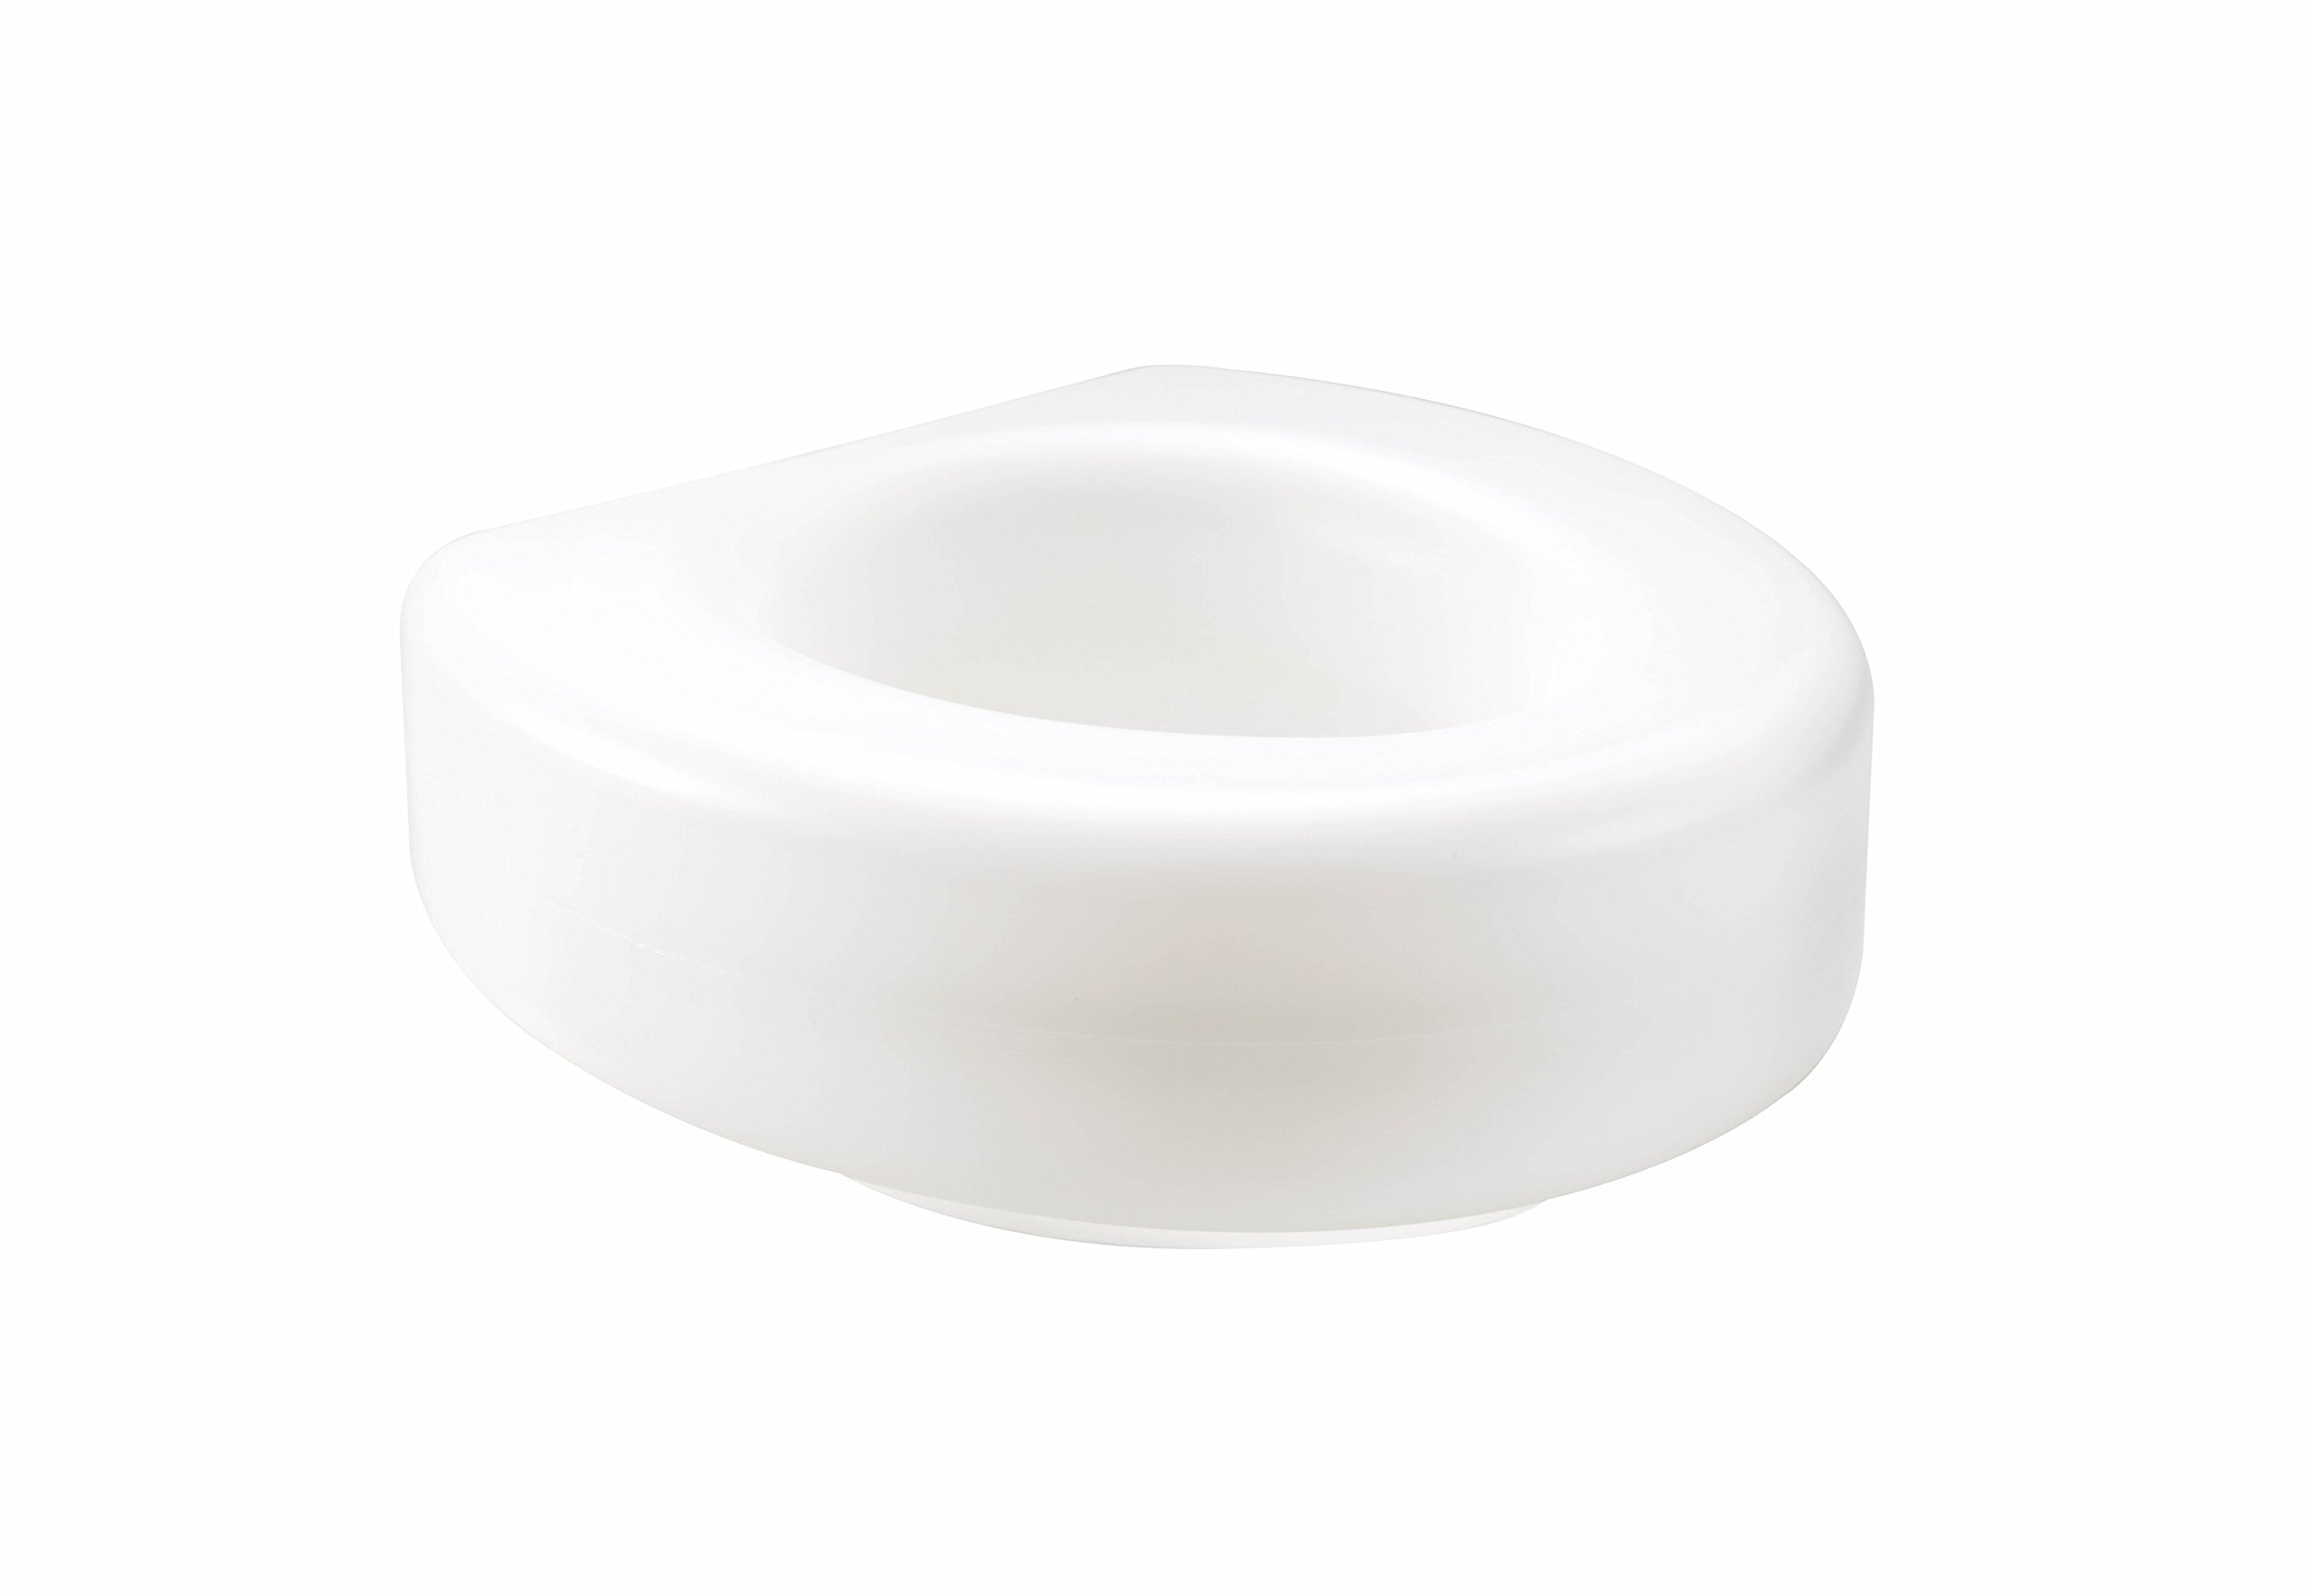 Medline Elevated Heavy Duty Raised Toilet Seat, 300lb Weight Capacity (Pack of 3)